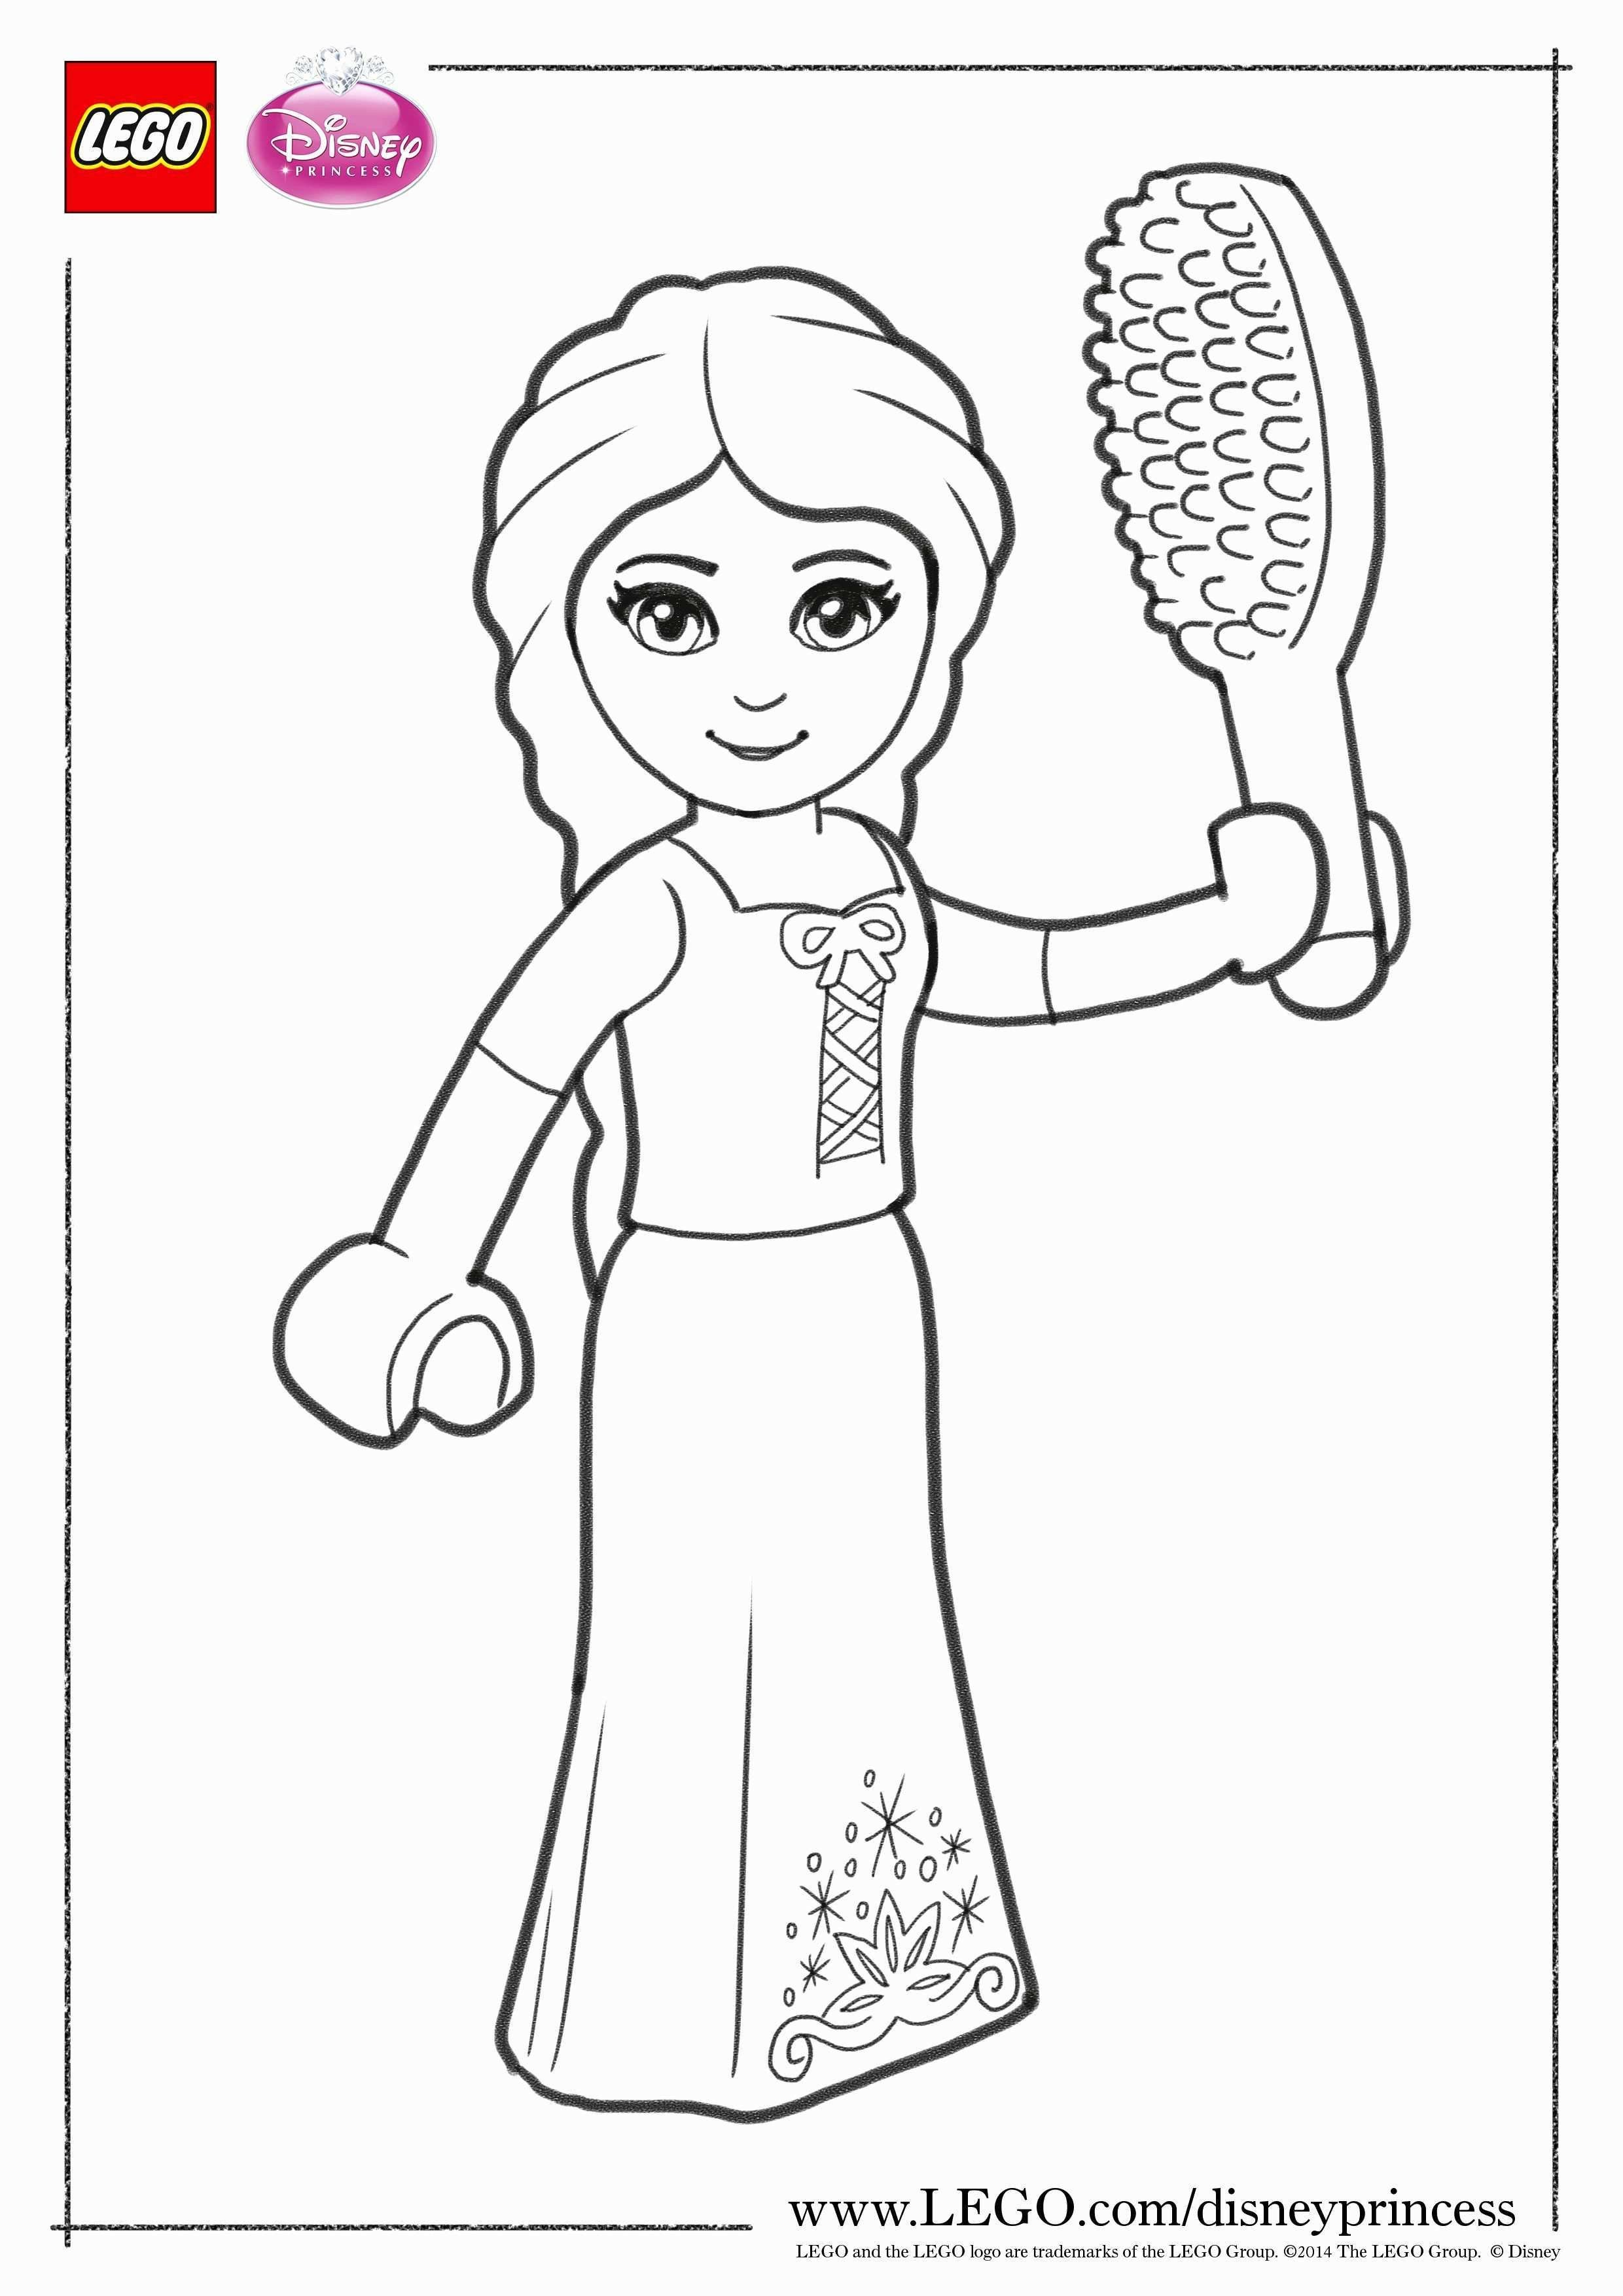 Disney Coloring Pages Pdf Lovely Coloring Pages Pdf Beautiful Luxury Disney Frozen Colouring Pa In 2020 Lego Coloring Pages Disney Coloring Pages Frozen Coloring Pages